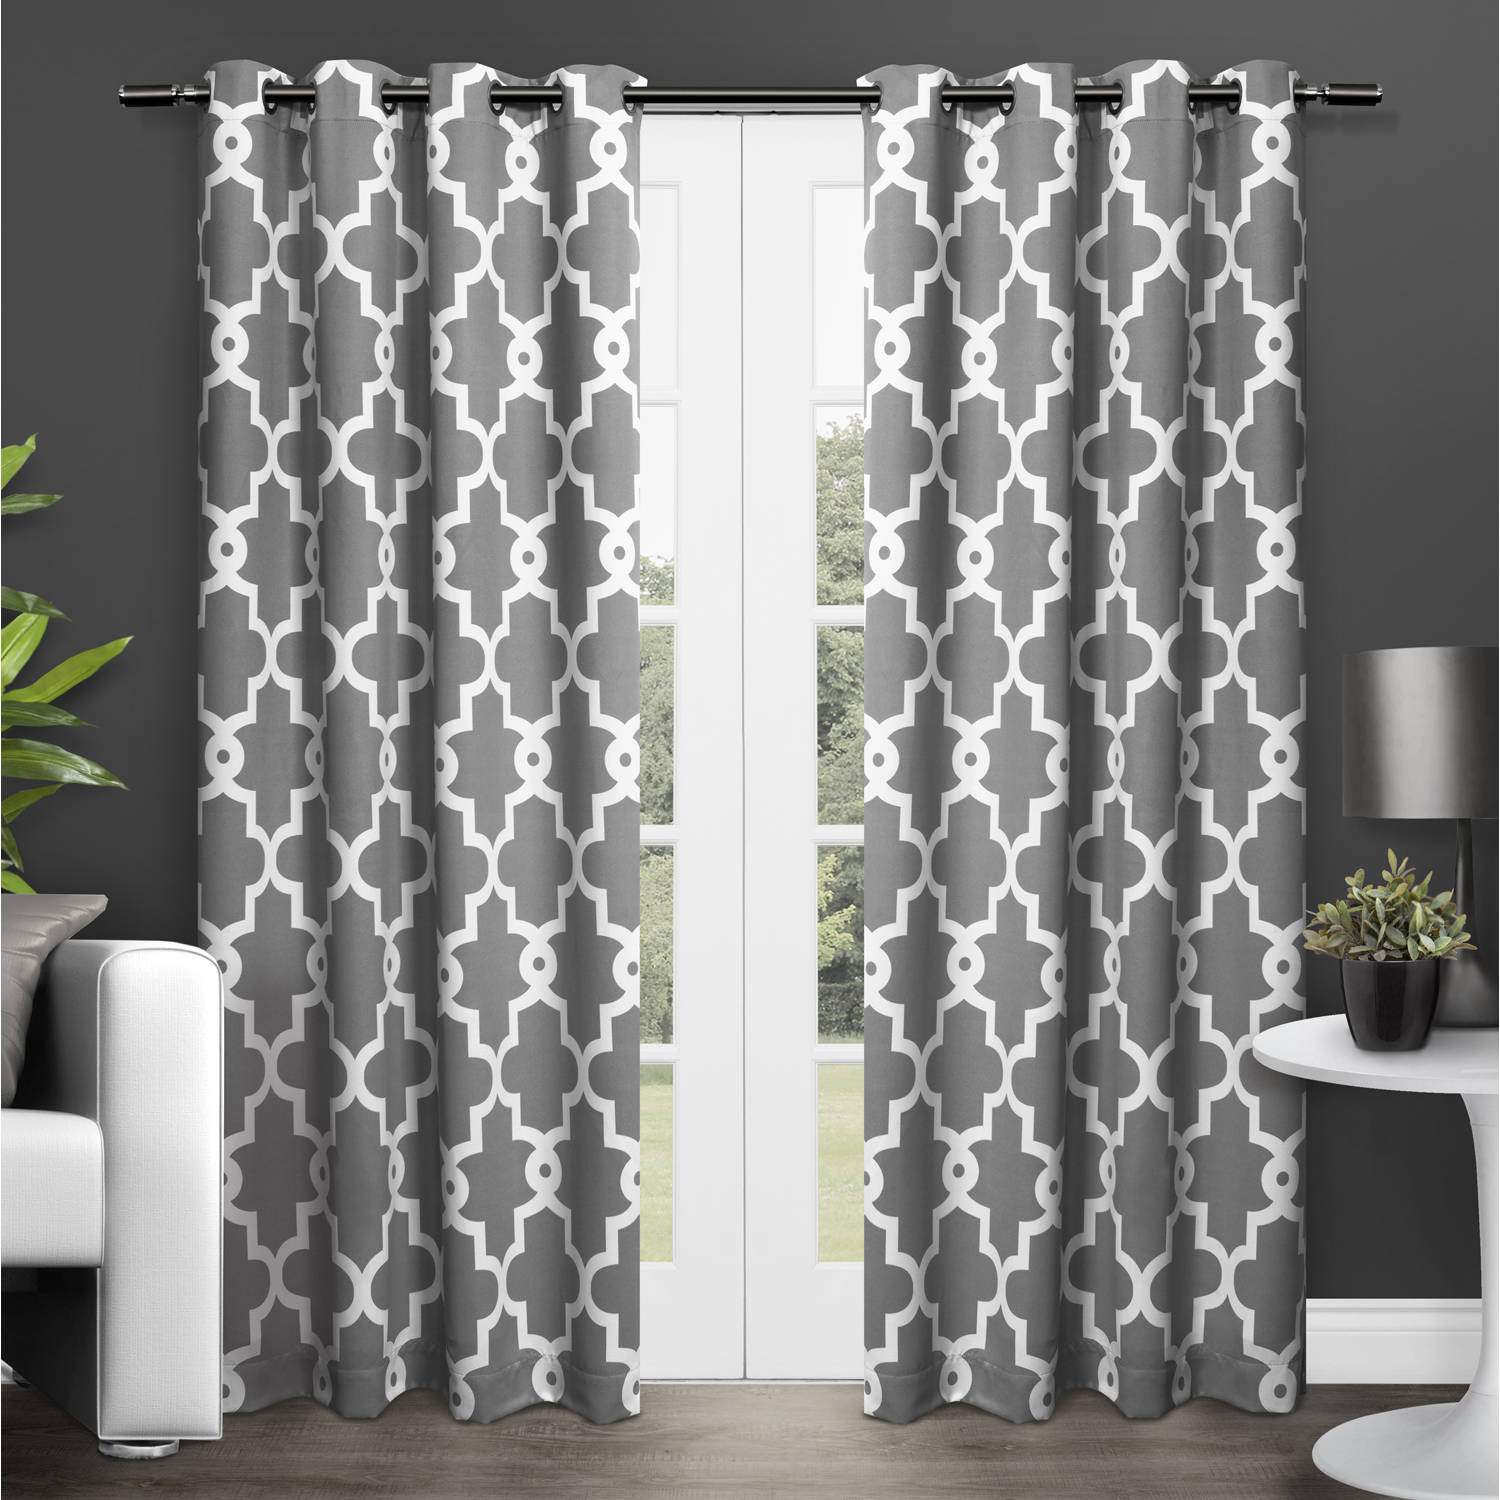 Exclusive Home Ironwork Sateen Woven Blackout Window Curtain Panel Pair With Grommet Top